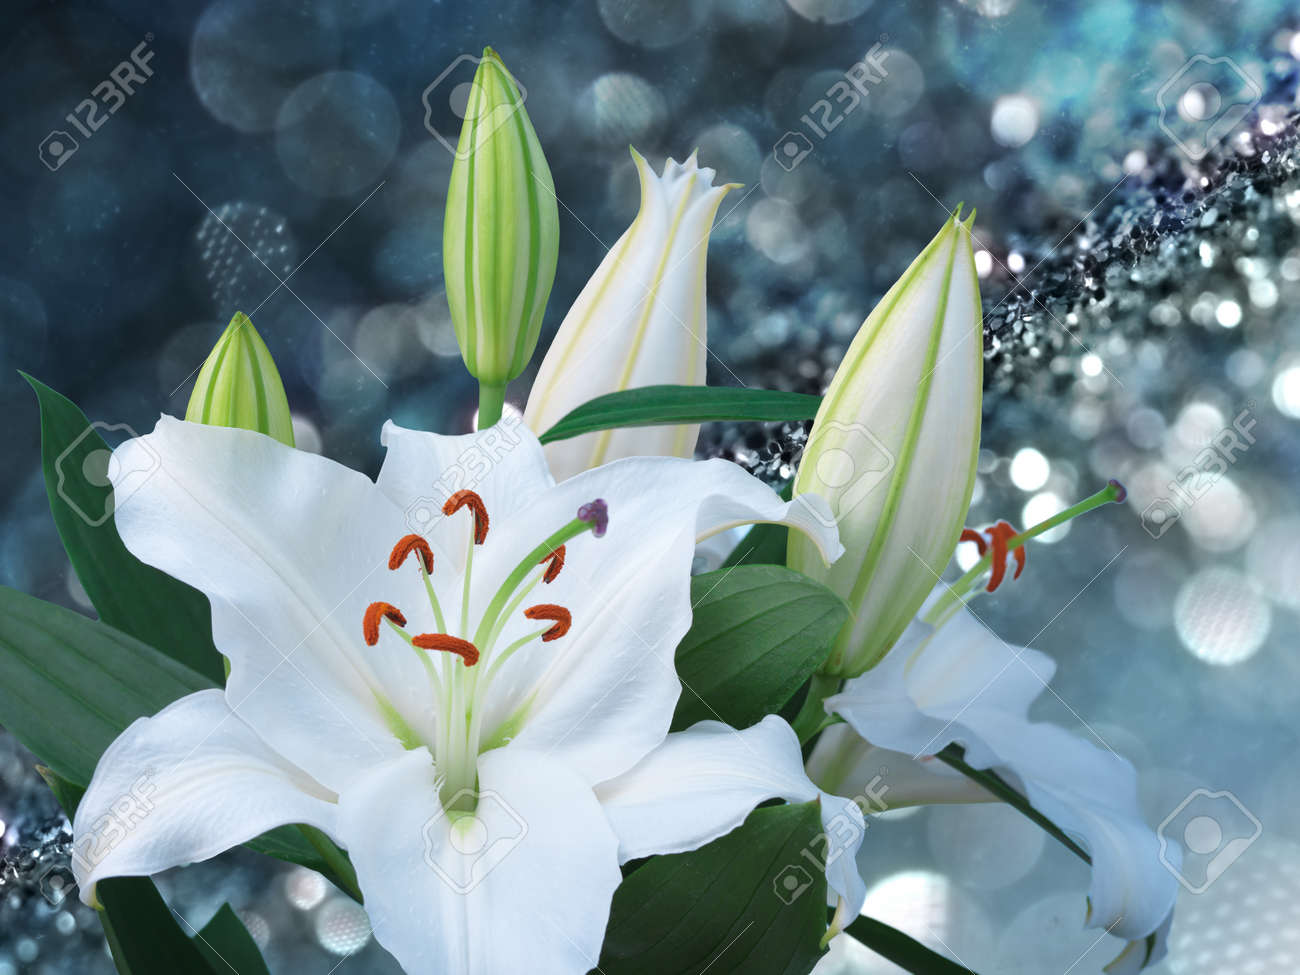 White Lily Flower On Blue Background With Bokeh Effects Stock Photo